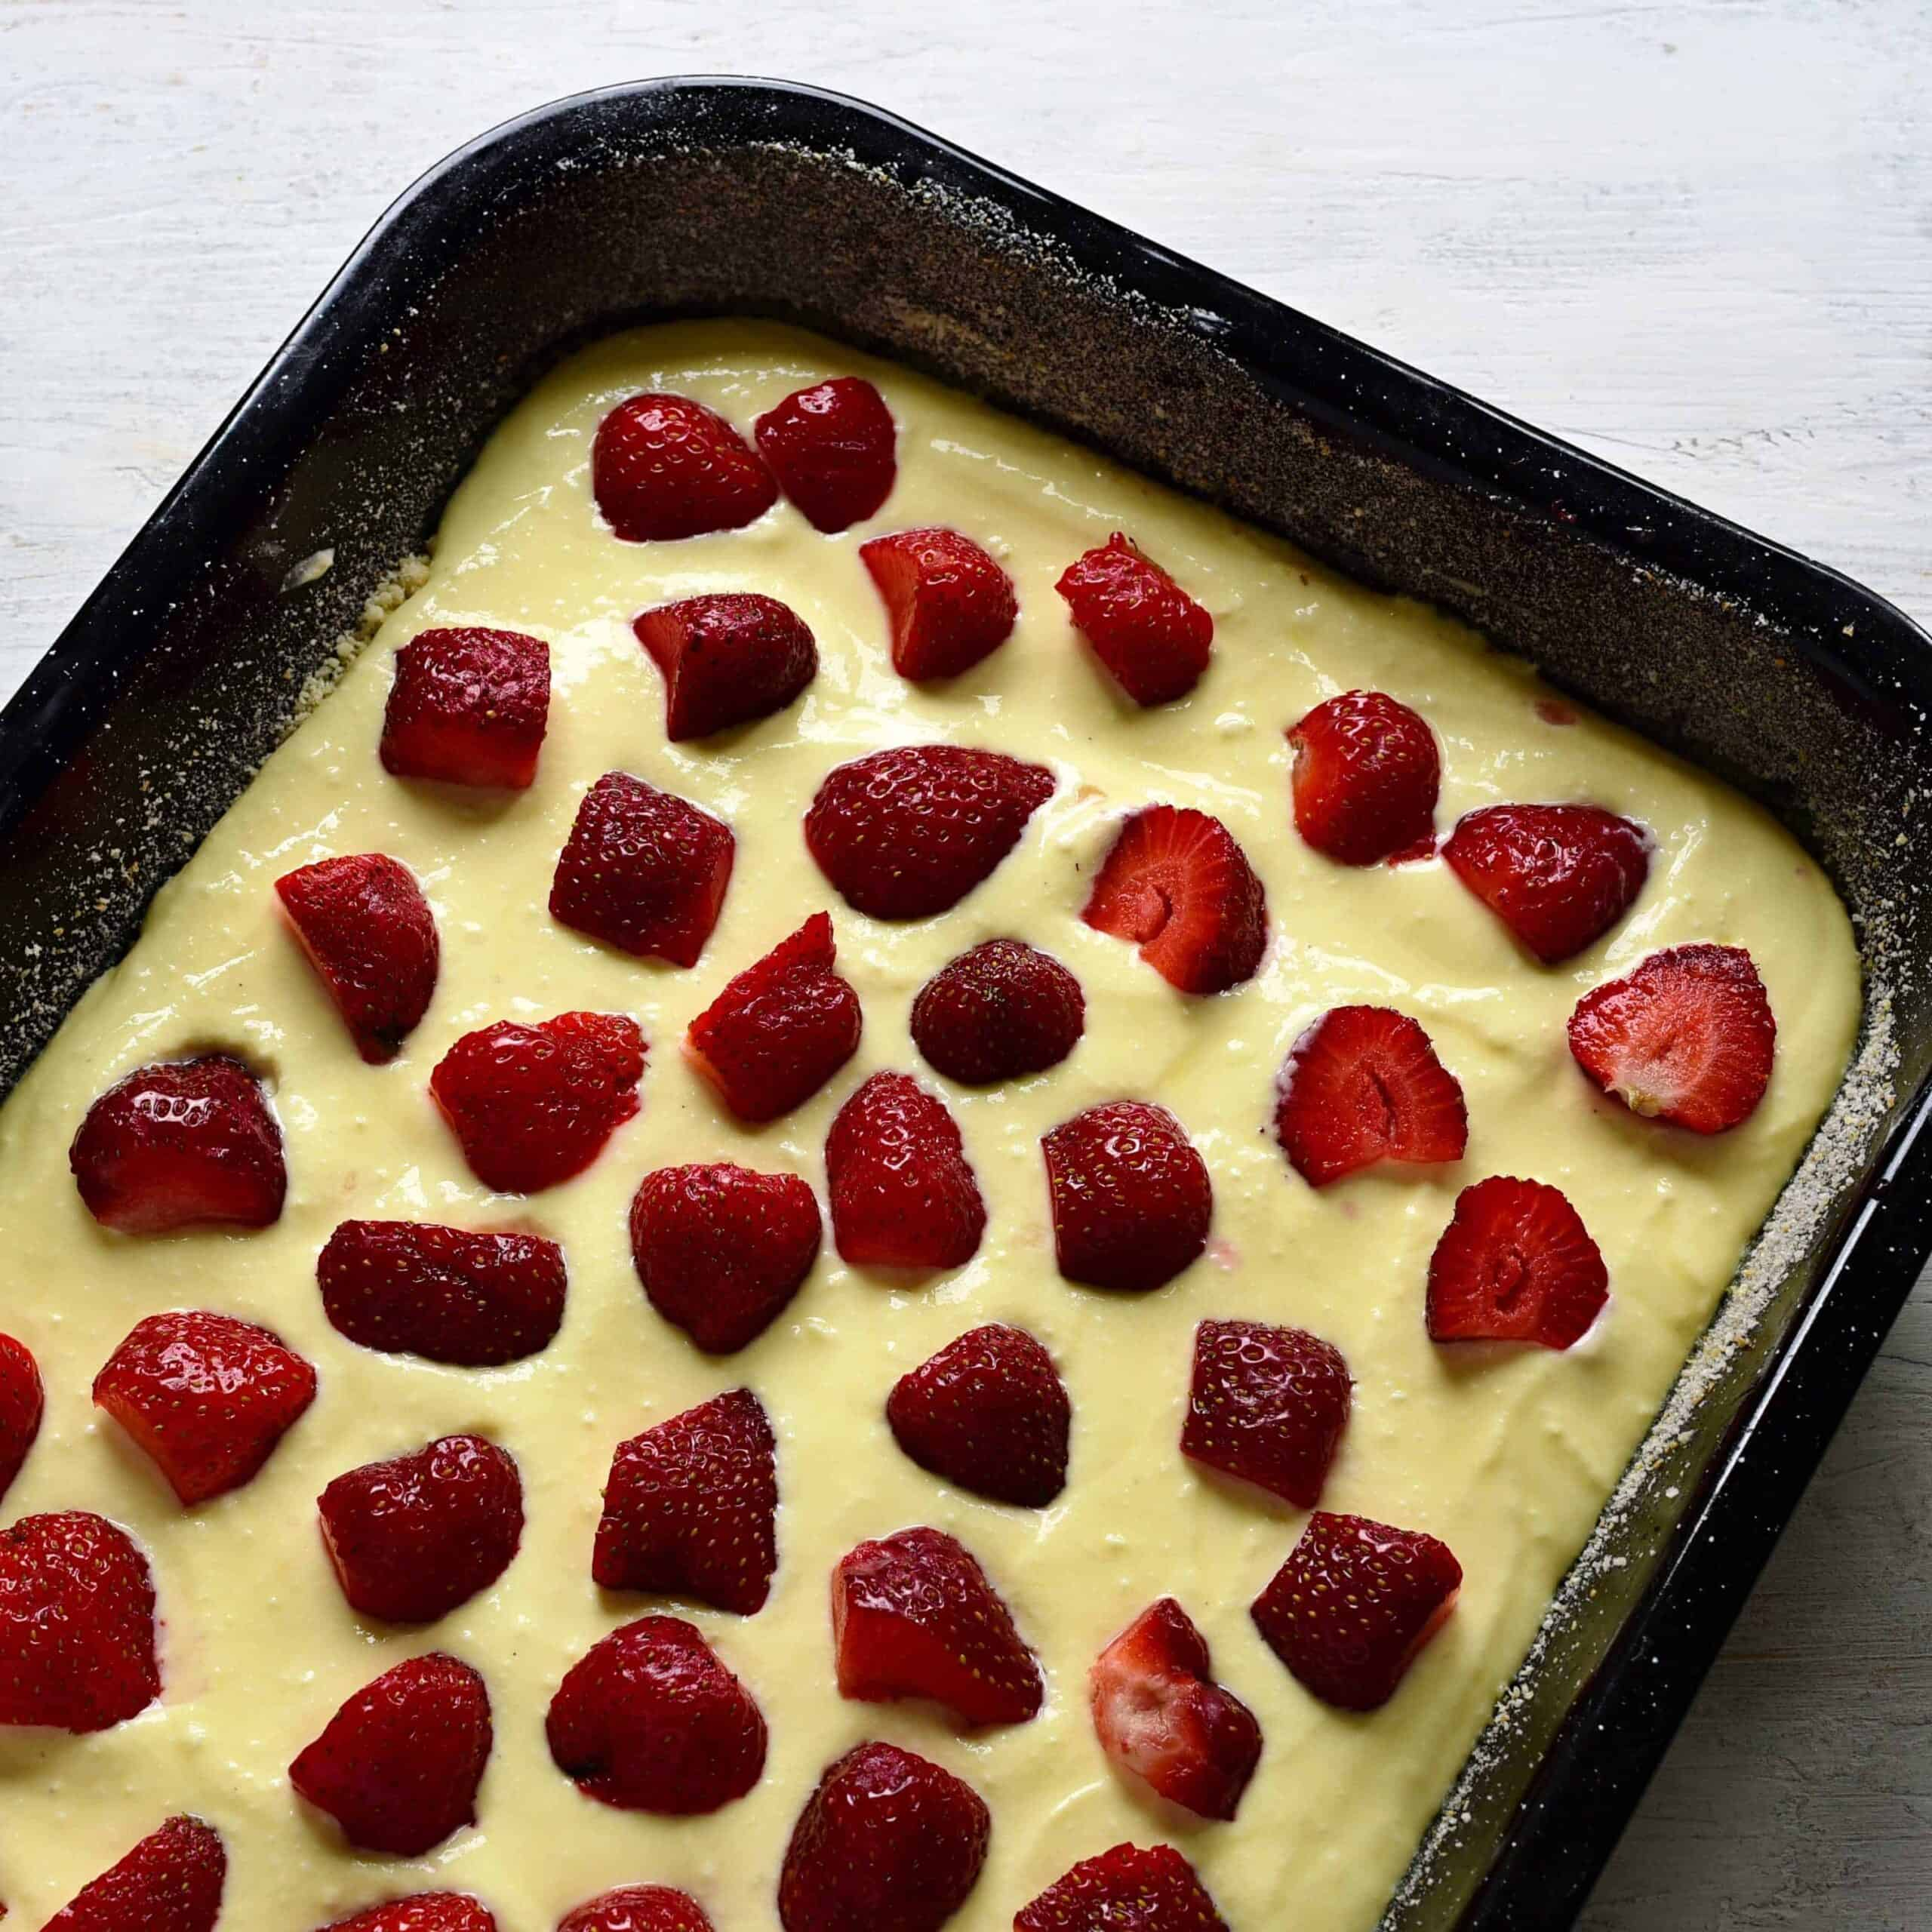 putting strawberries over cream cheese filling